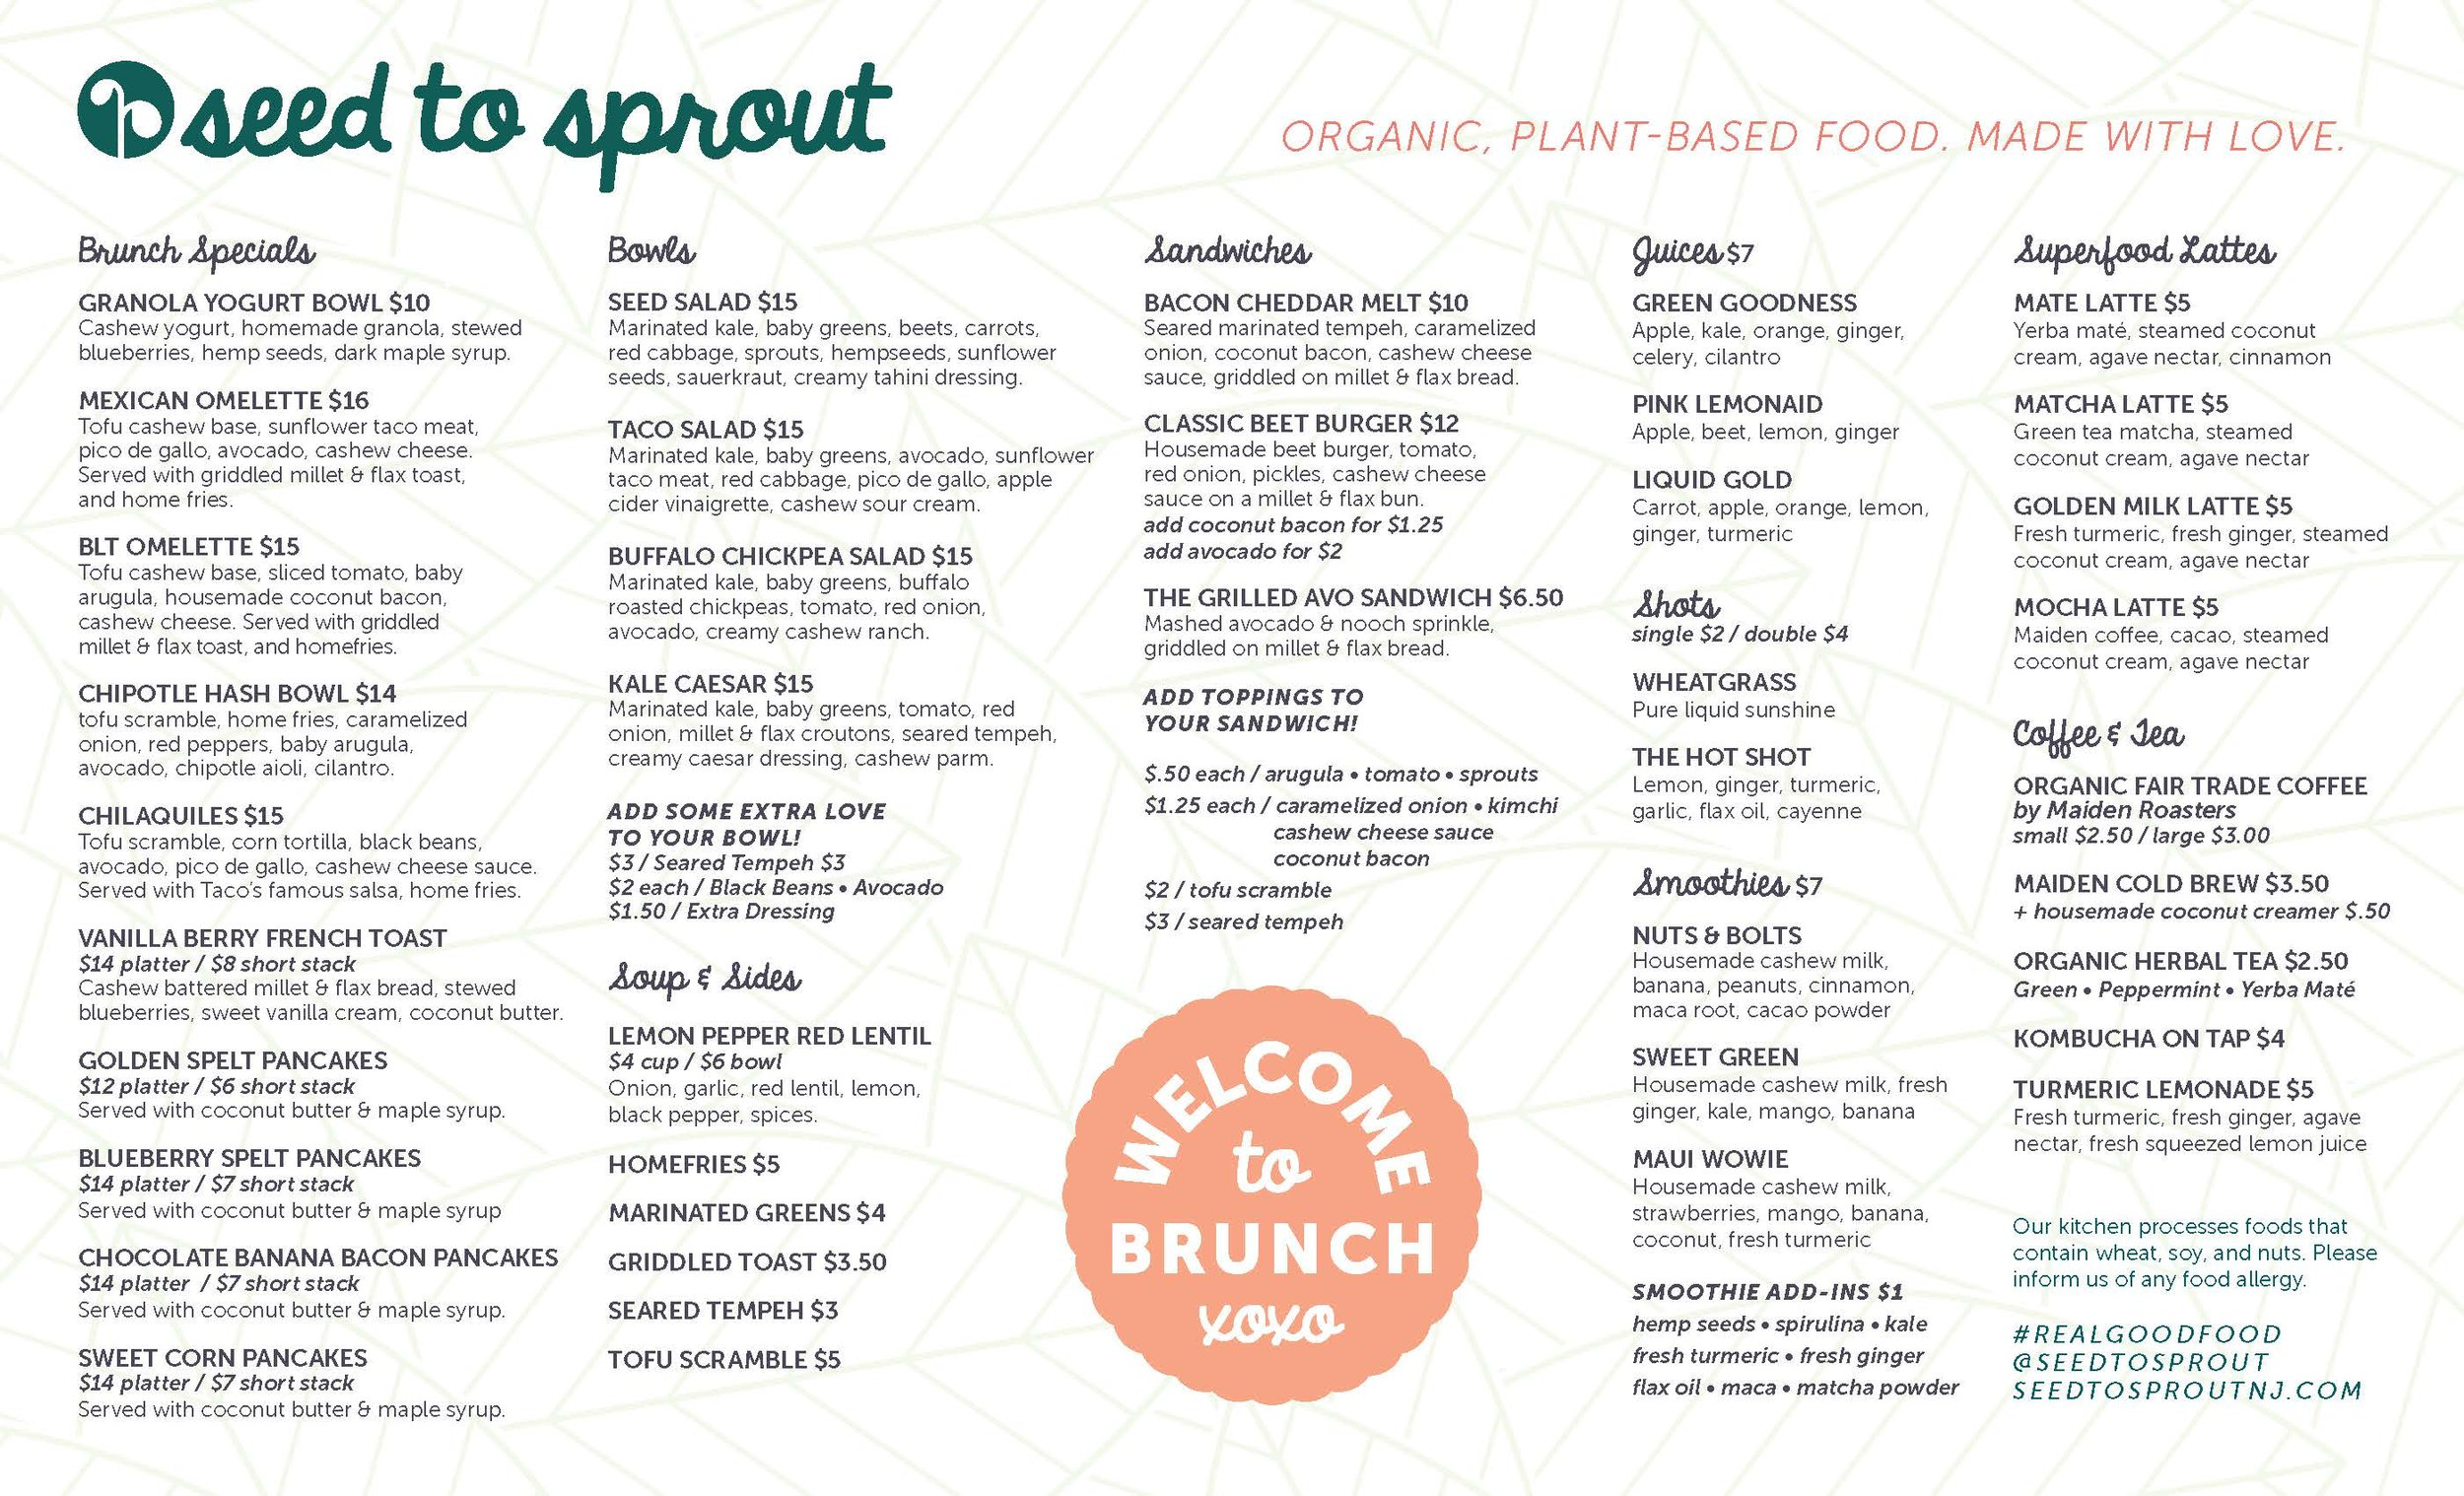 STS BRUNCH MENU 2019 Q2.jpg